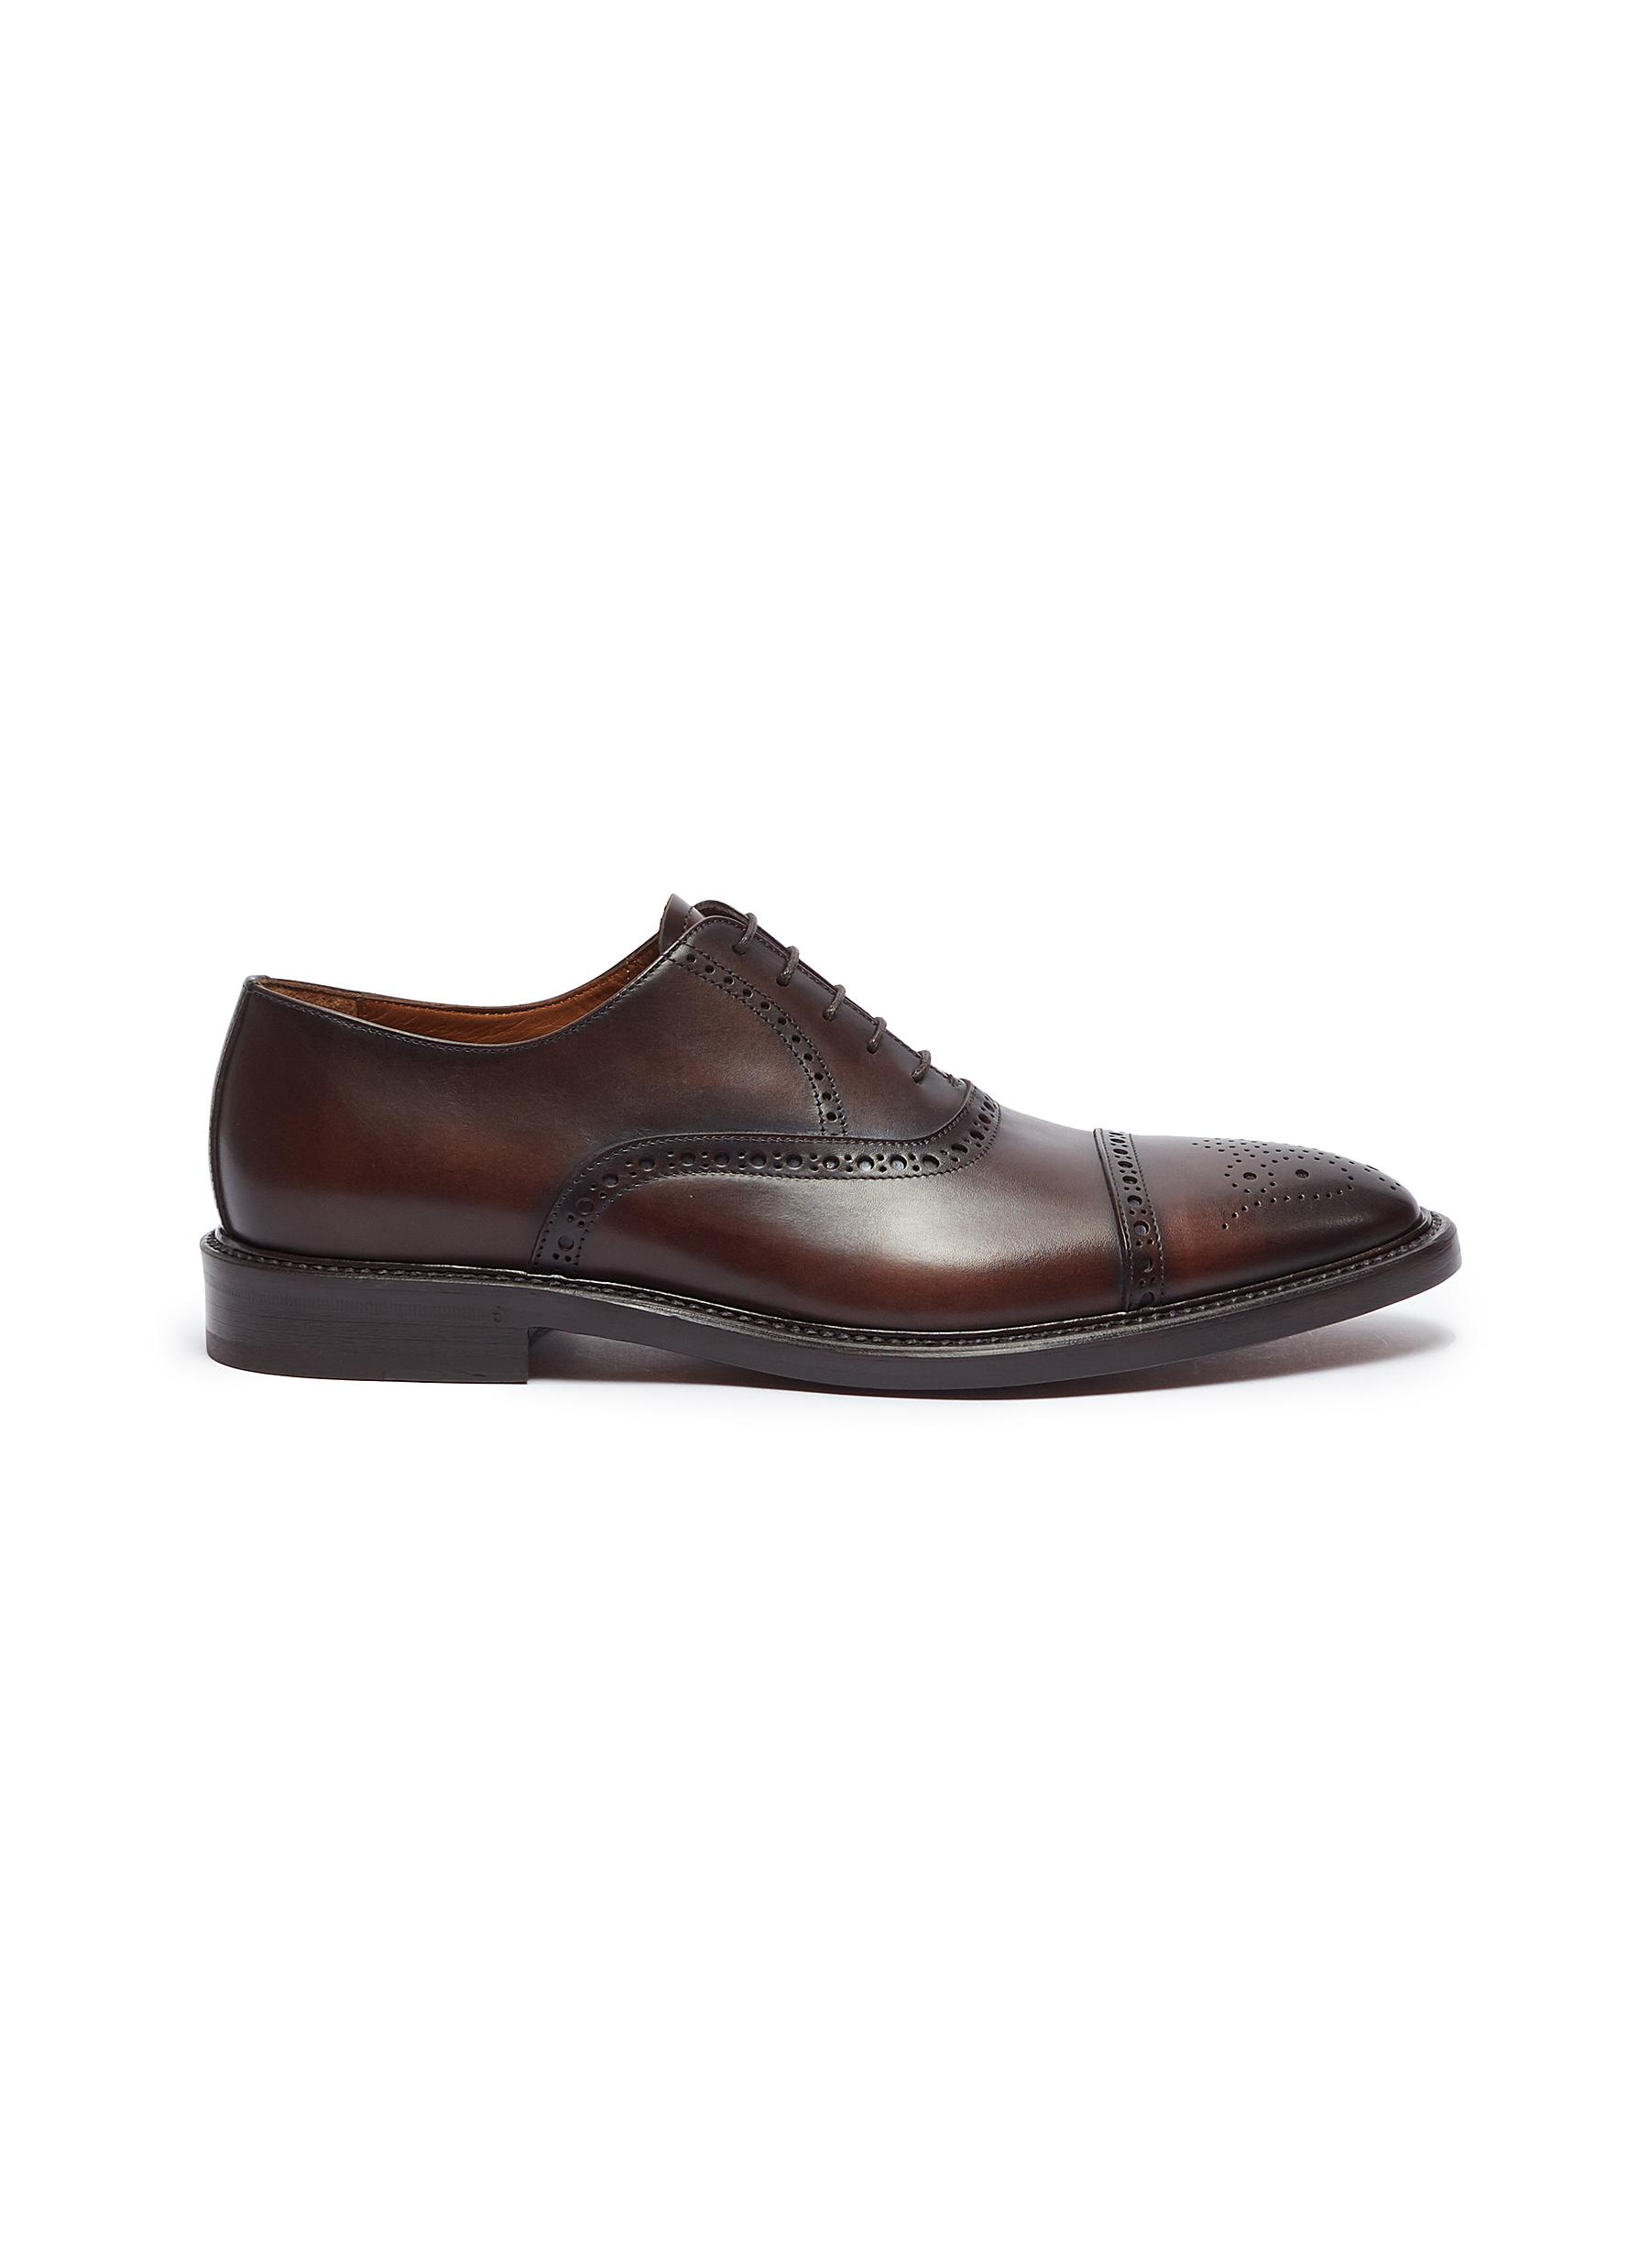 Camel leather brogue Oxfords by ANTONIO MAURIZI